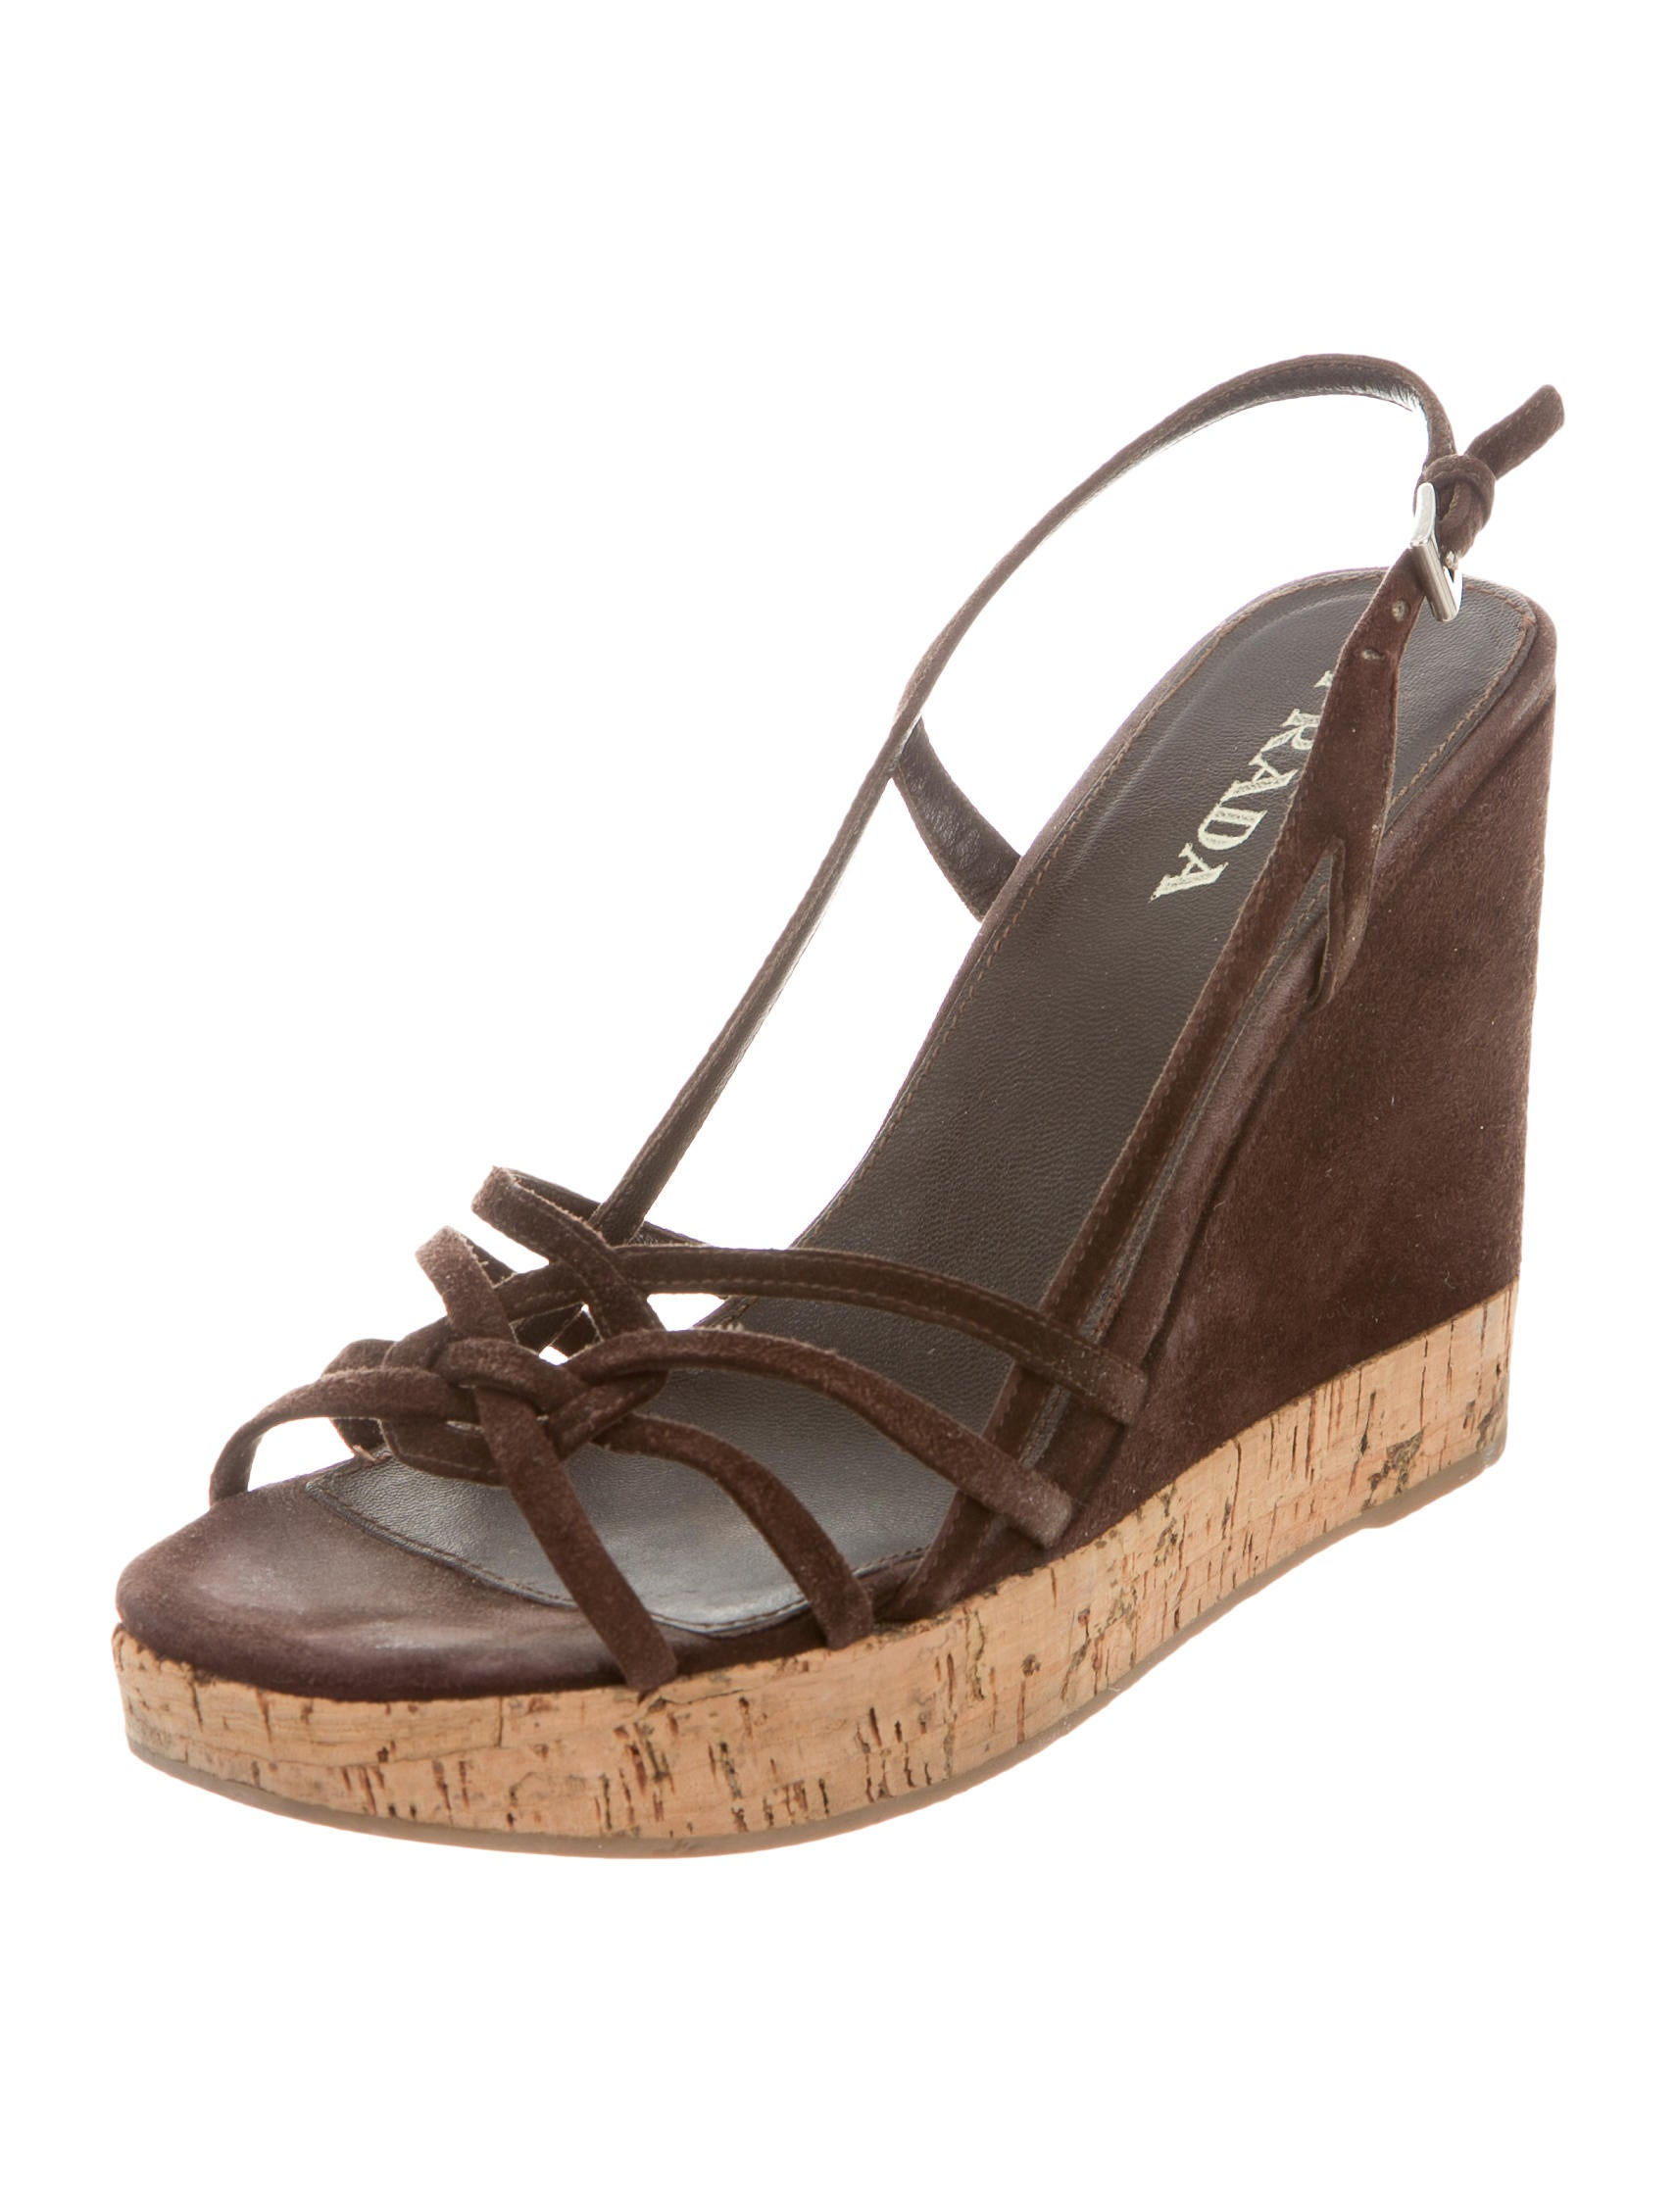 prada suede wedge sandals shoes pra113132 the realreal